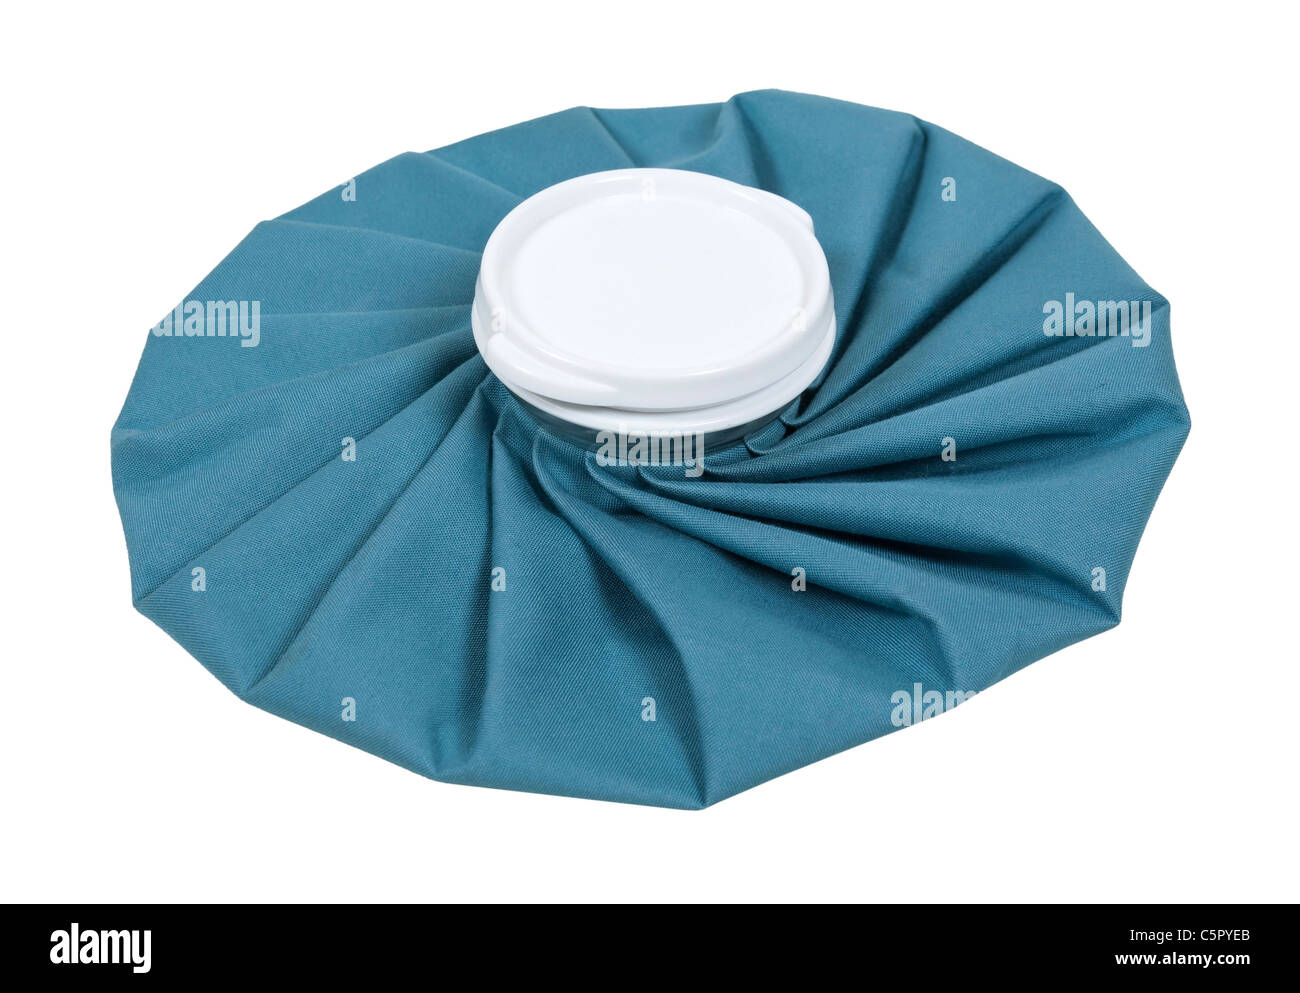 Retro pleated blue ice pack for first aid use - path included - Stock Image